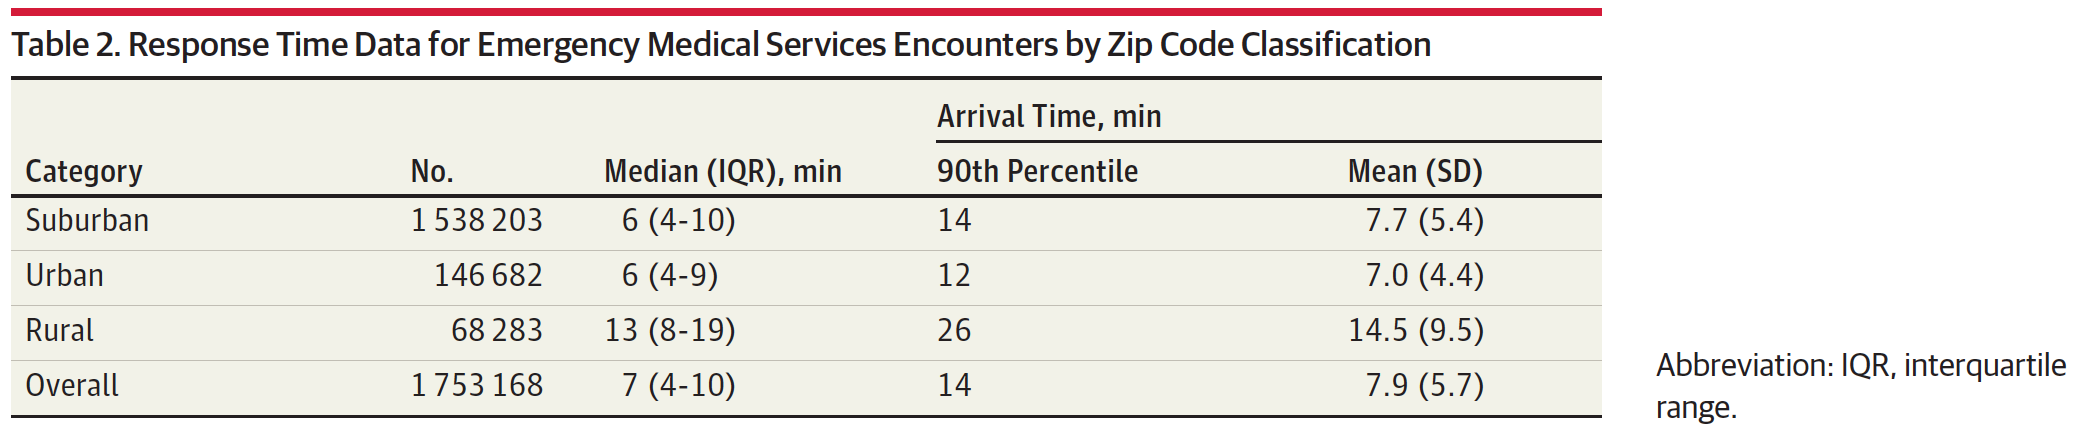 Page 2 Truthsabouthealthcare Wiring Specialties Coupon Code And Heres Validation For Ambulance Response Time A Table From Study That Determined Times In Urban Suburban Rural Areas